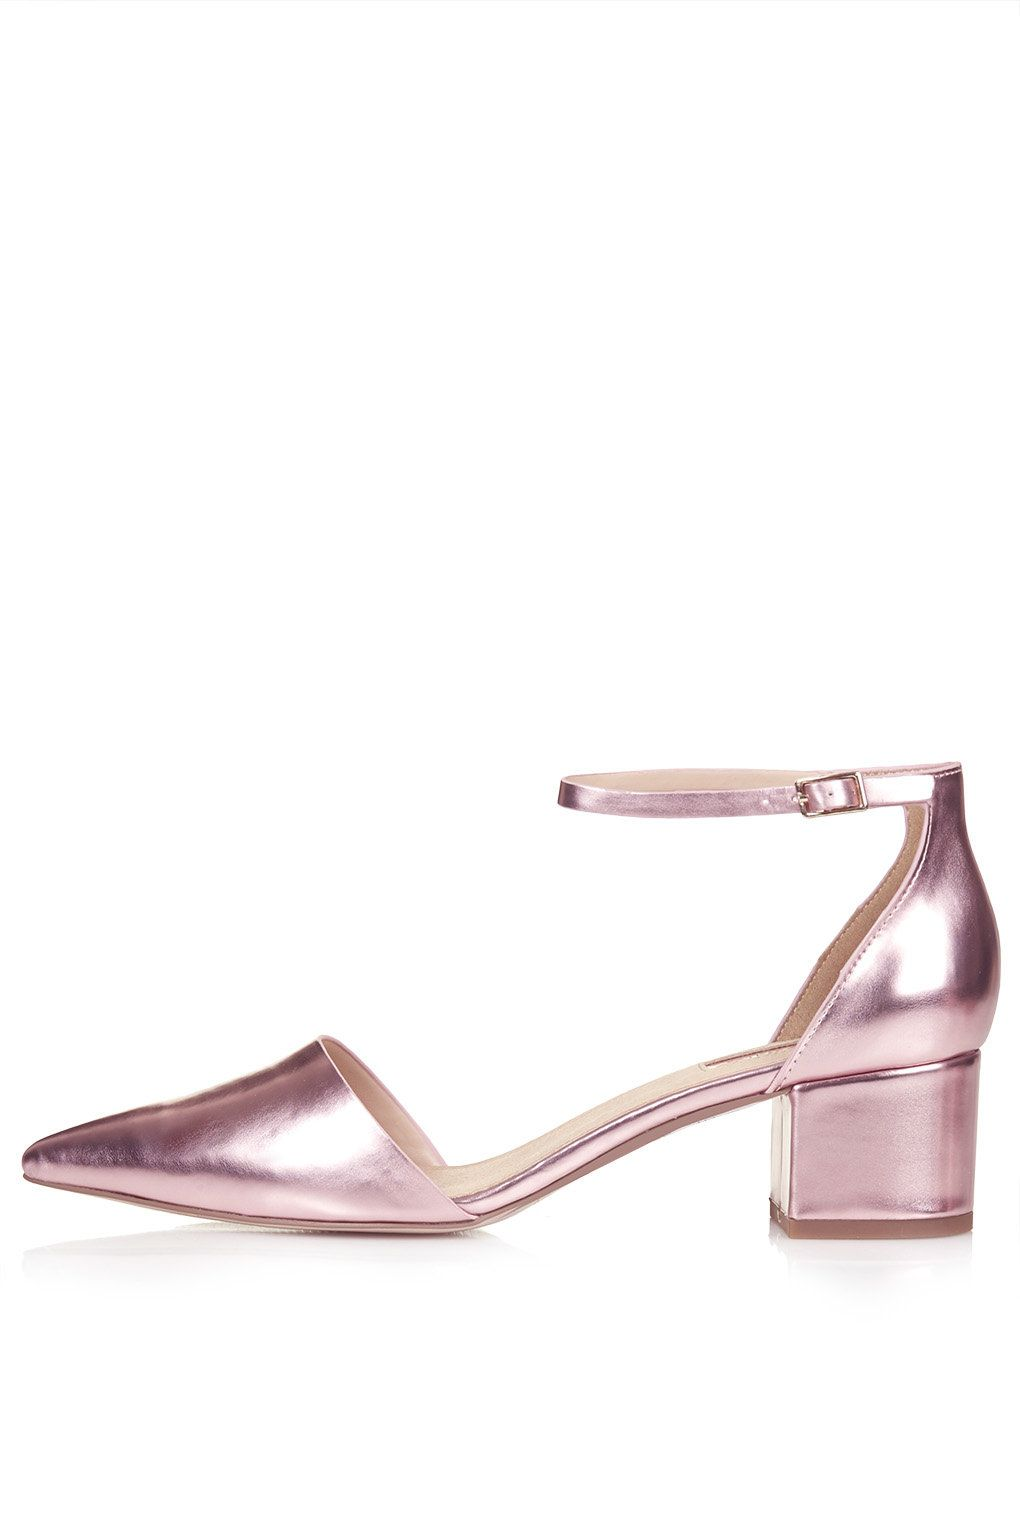 JIVE Metallic Mid-Heel Shoes - Heels - Shoes | Metallic shoes